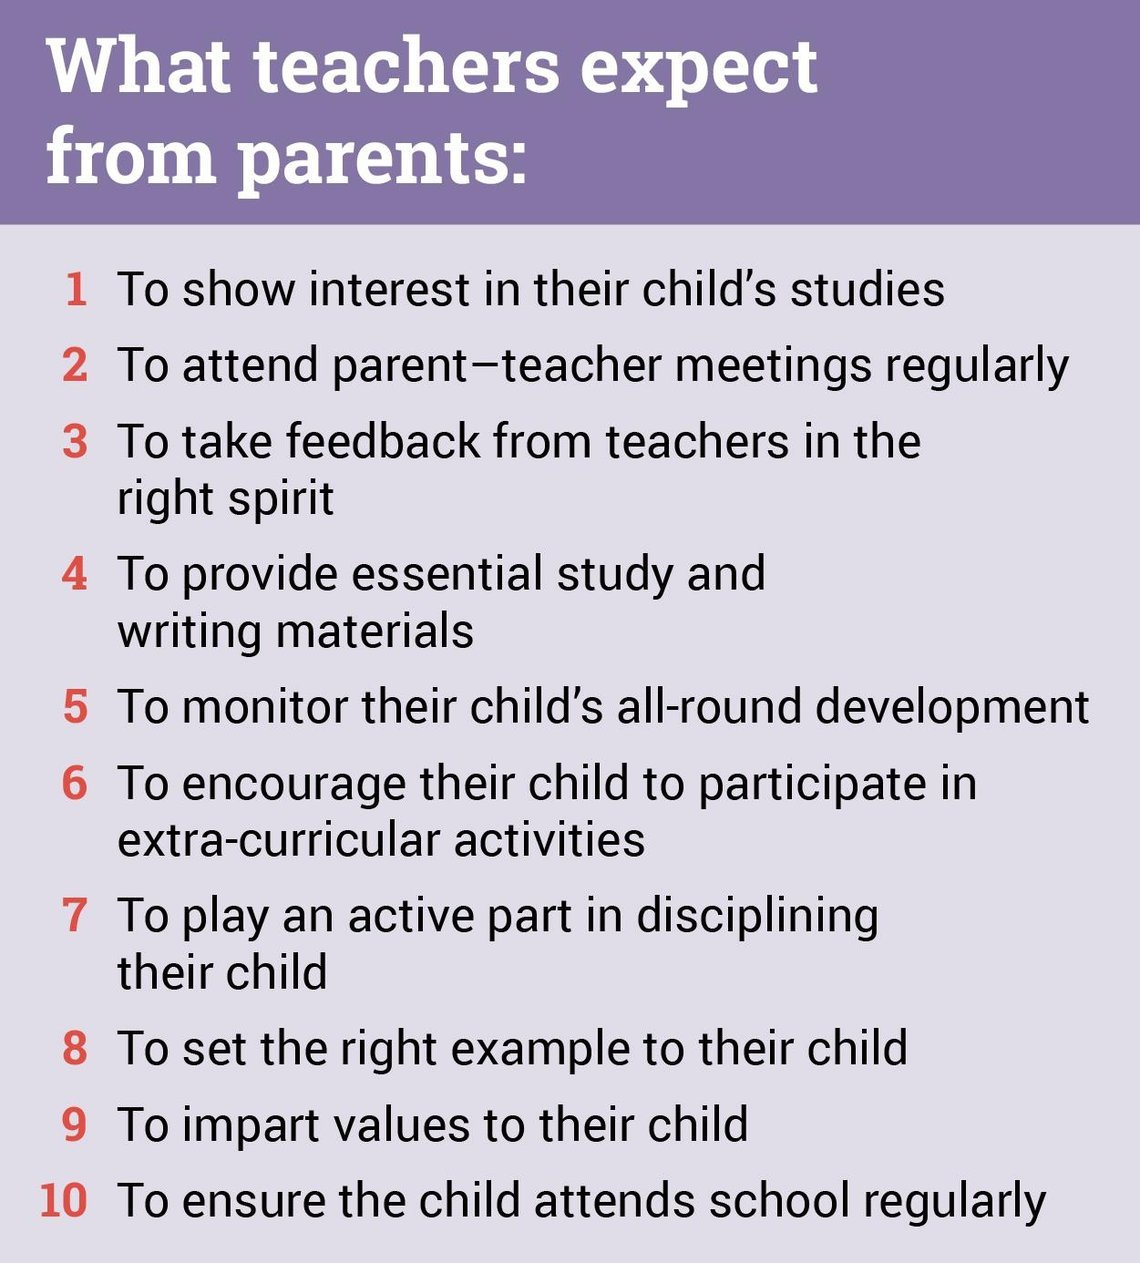 How to Build a Good Relationship With Your Child's Teacher